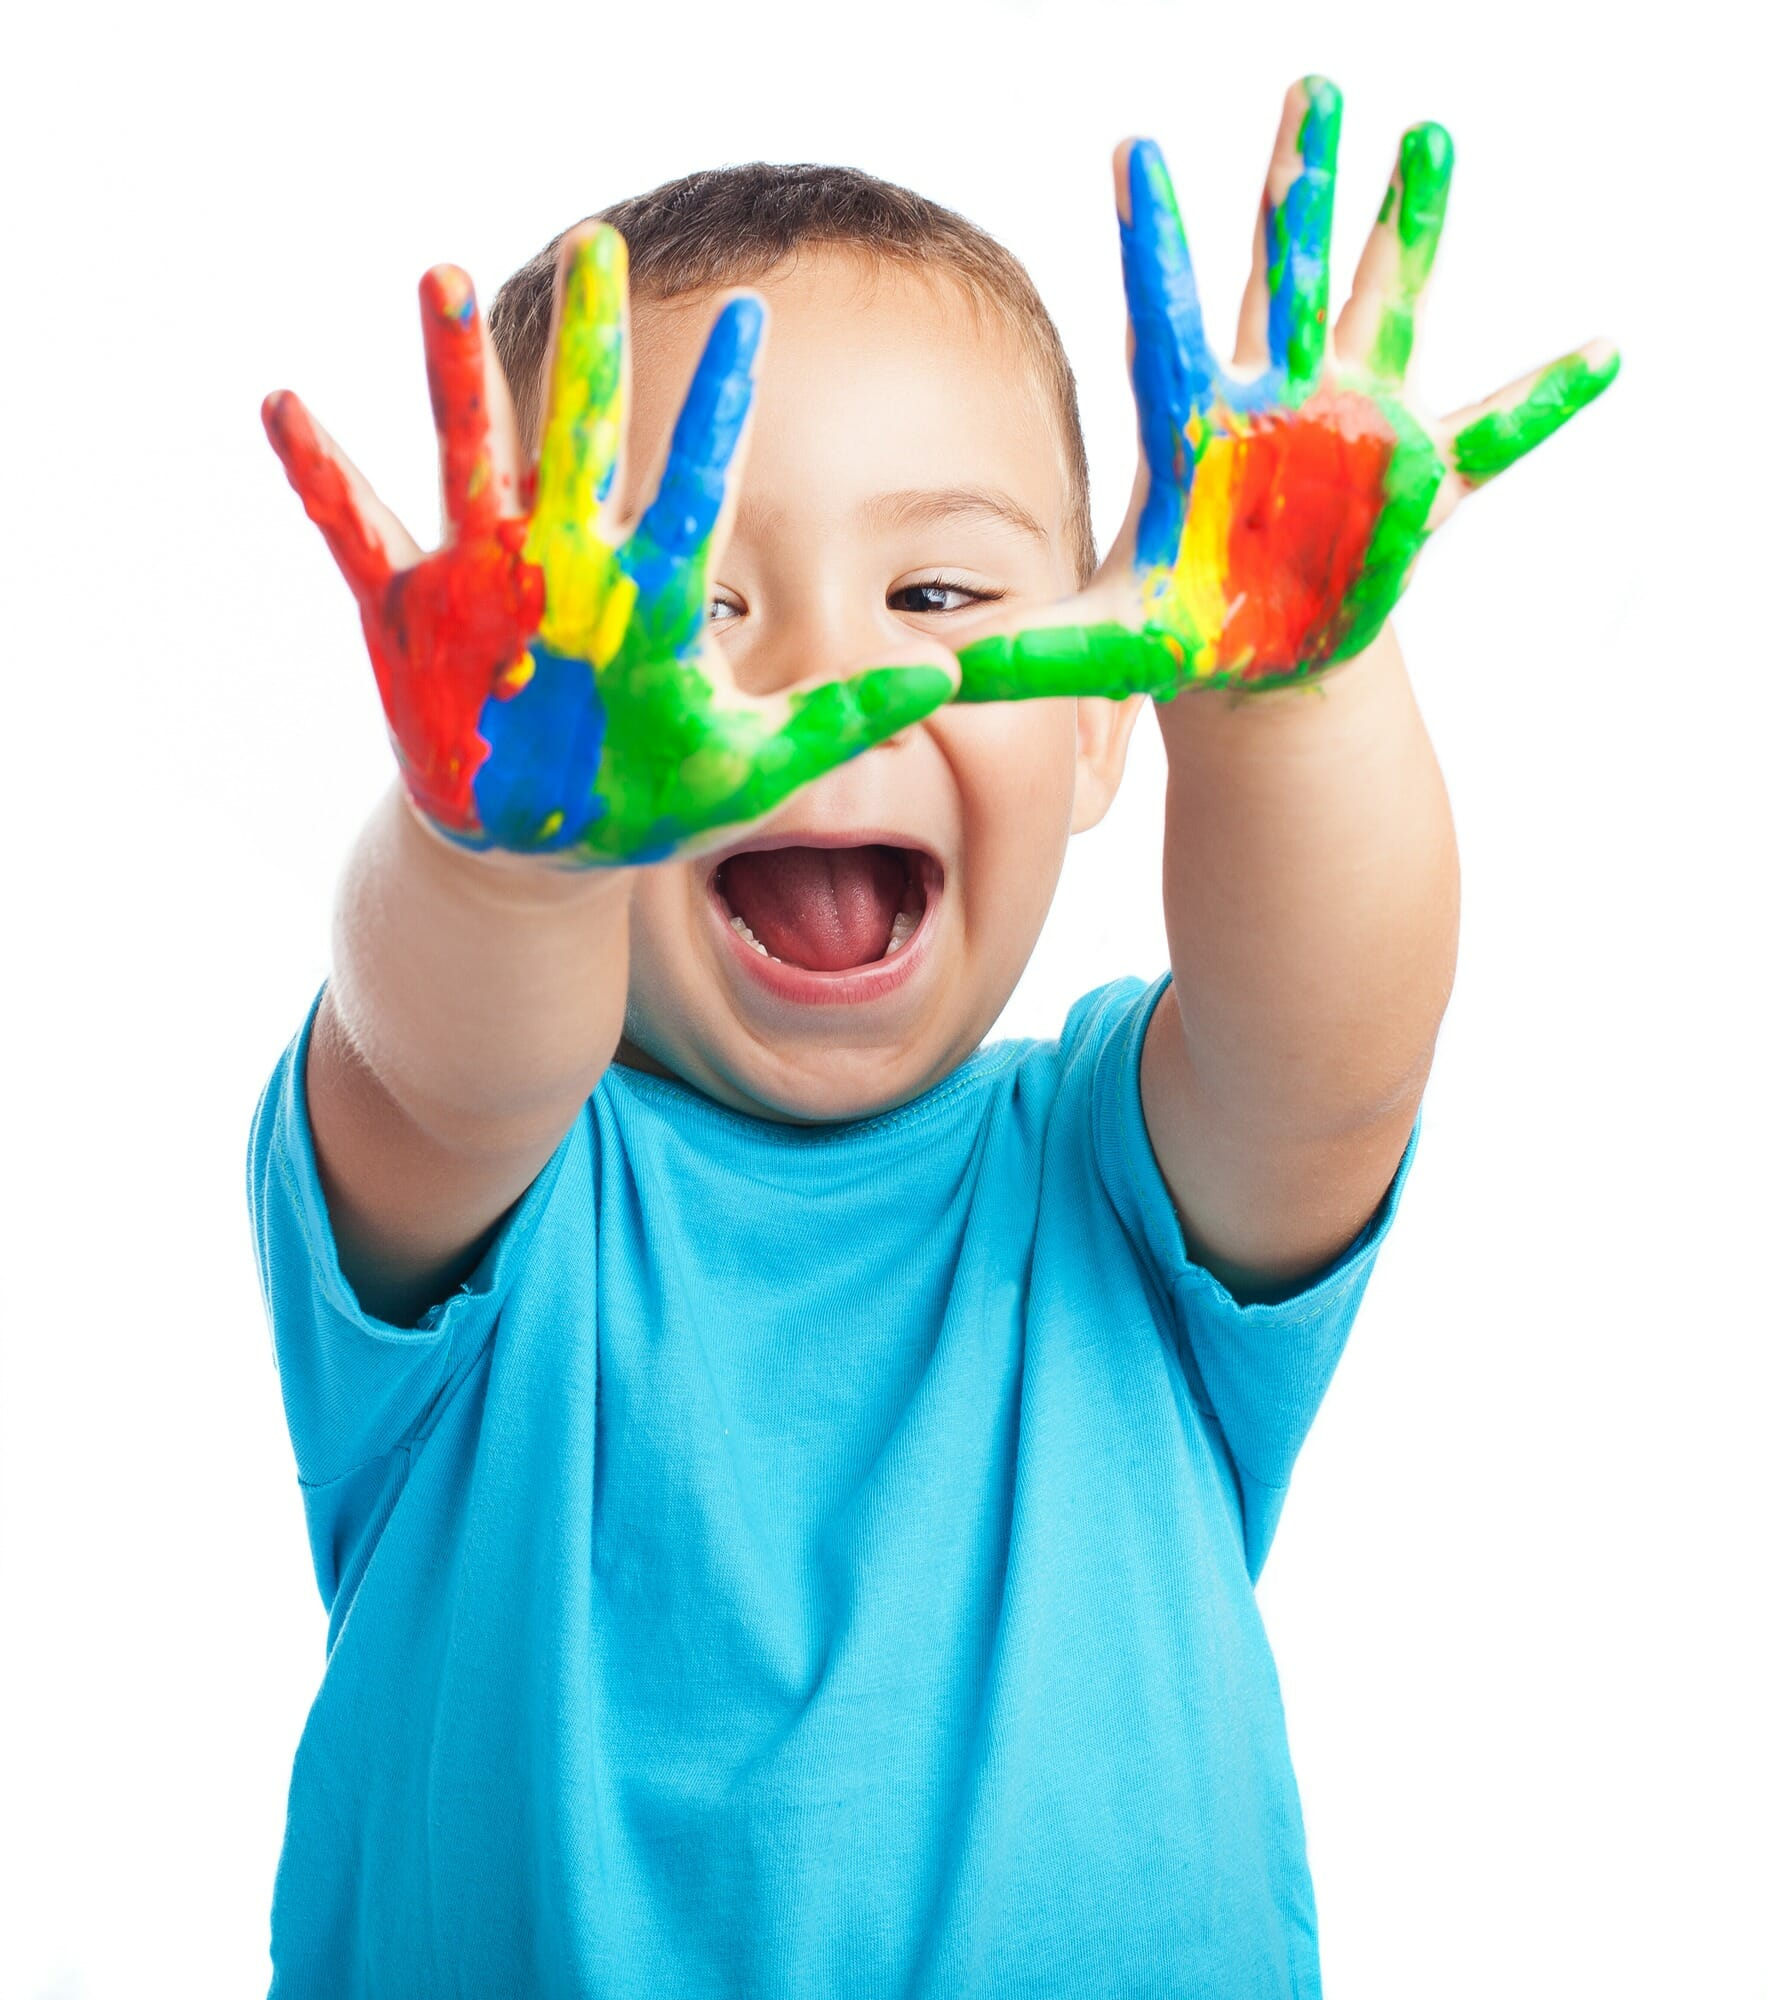 40 Sensory Play Activities for Kids Awesome sensory activities for kids with autism or other special needs! DIY sensory bins and activities help kids both at home and in the classroom with development and help anxious kids calm down! #autism #specialneedsparenting #sensory #sensoryactivities #sensorybins #sensorybinsfortoddlers